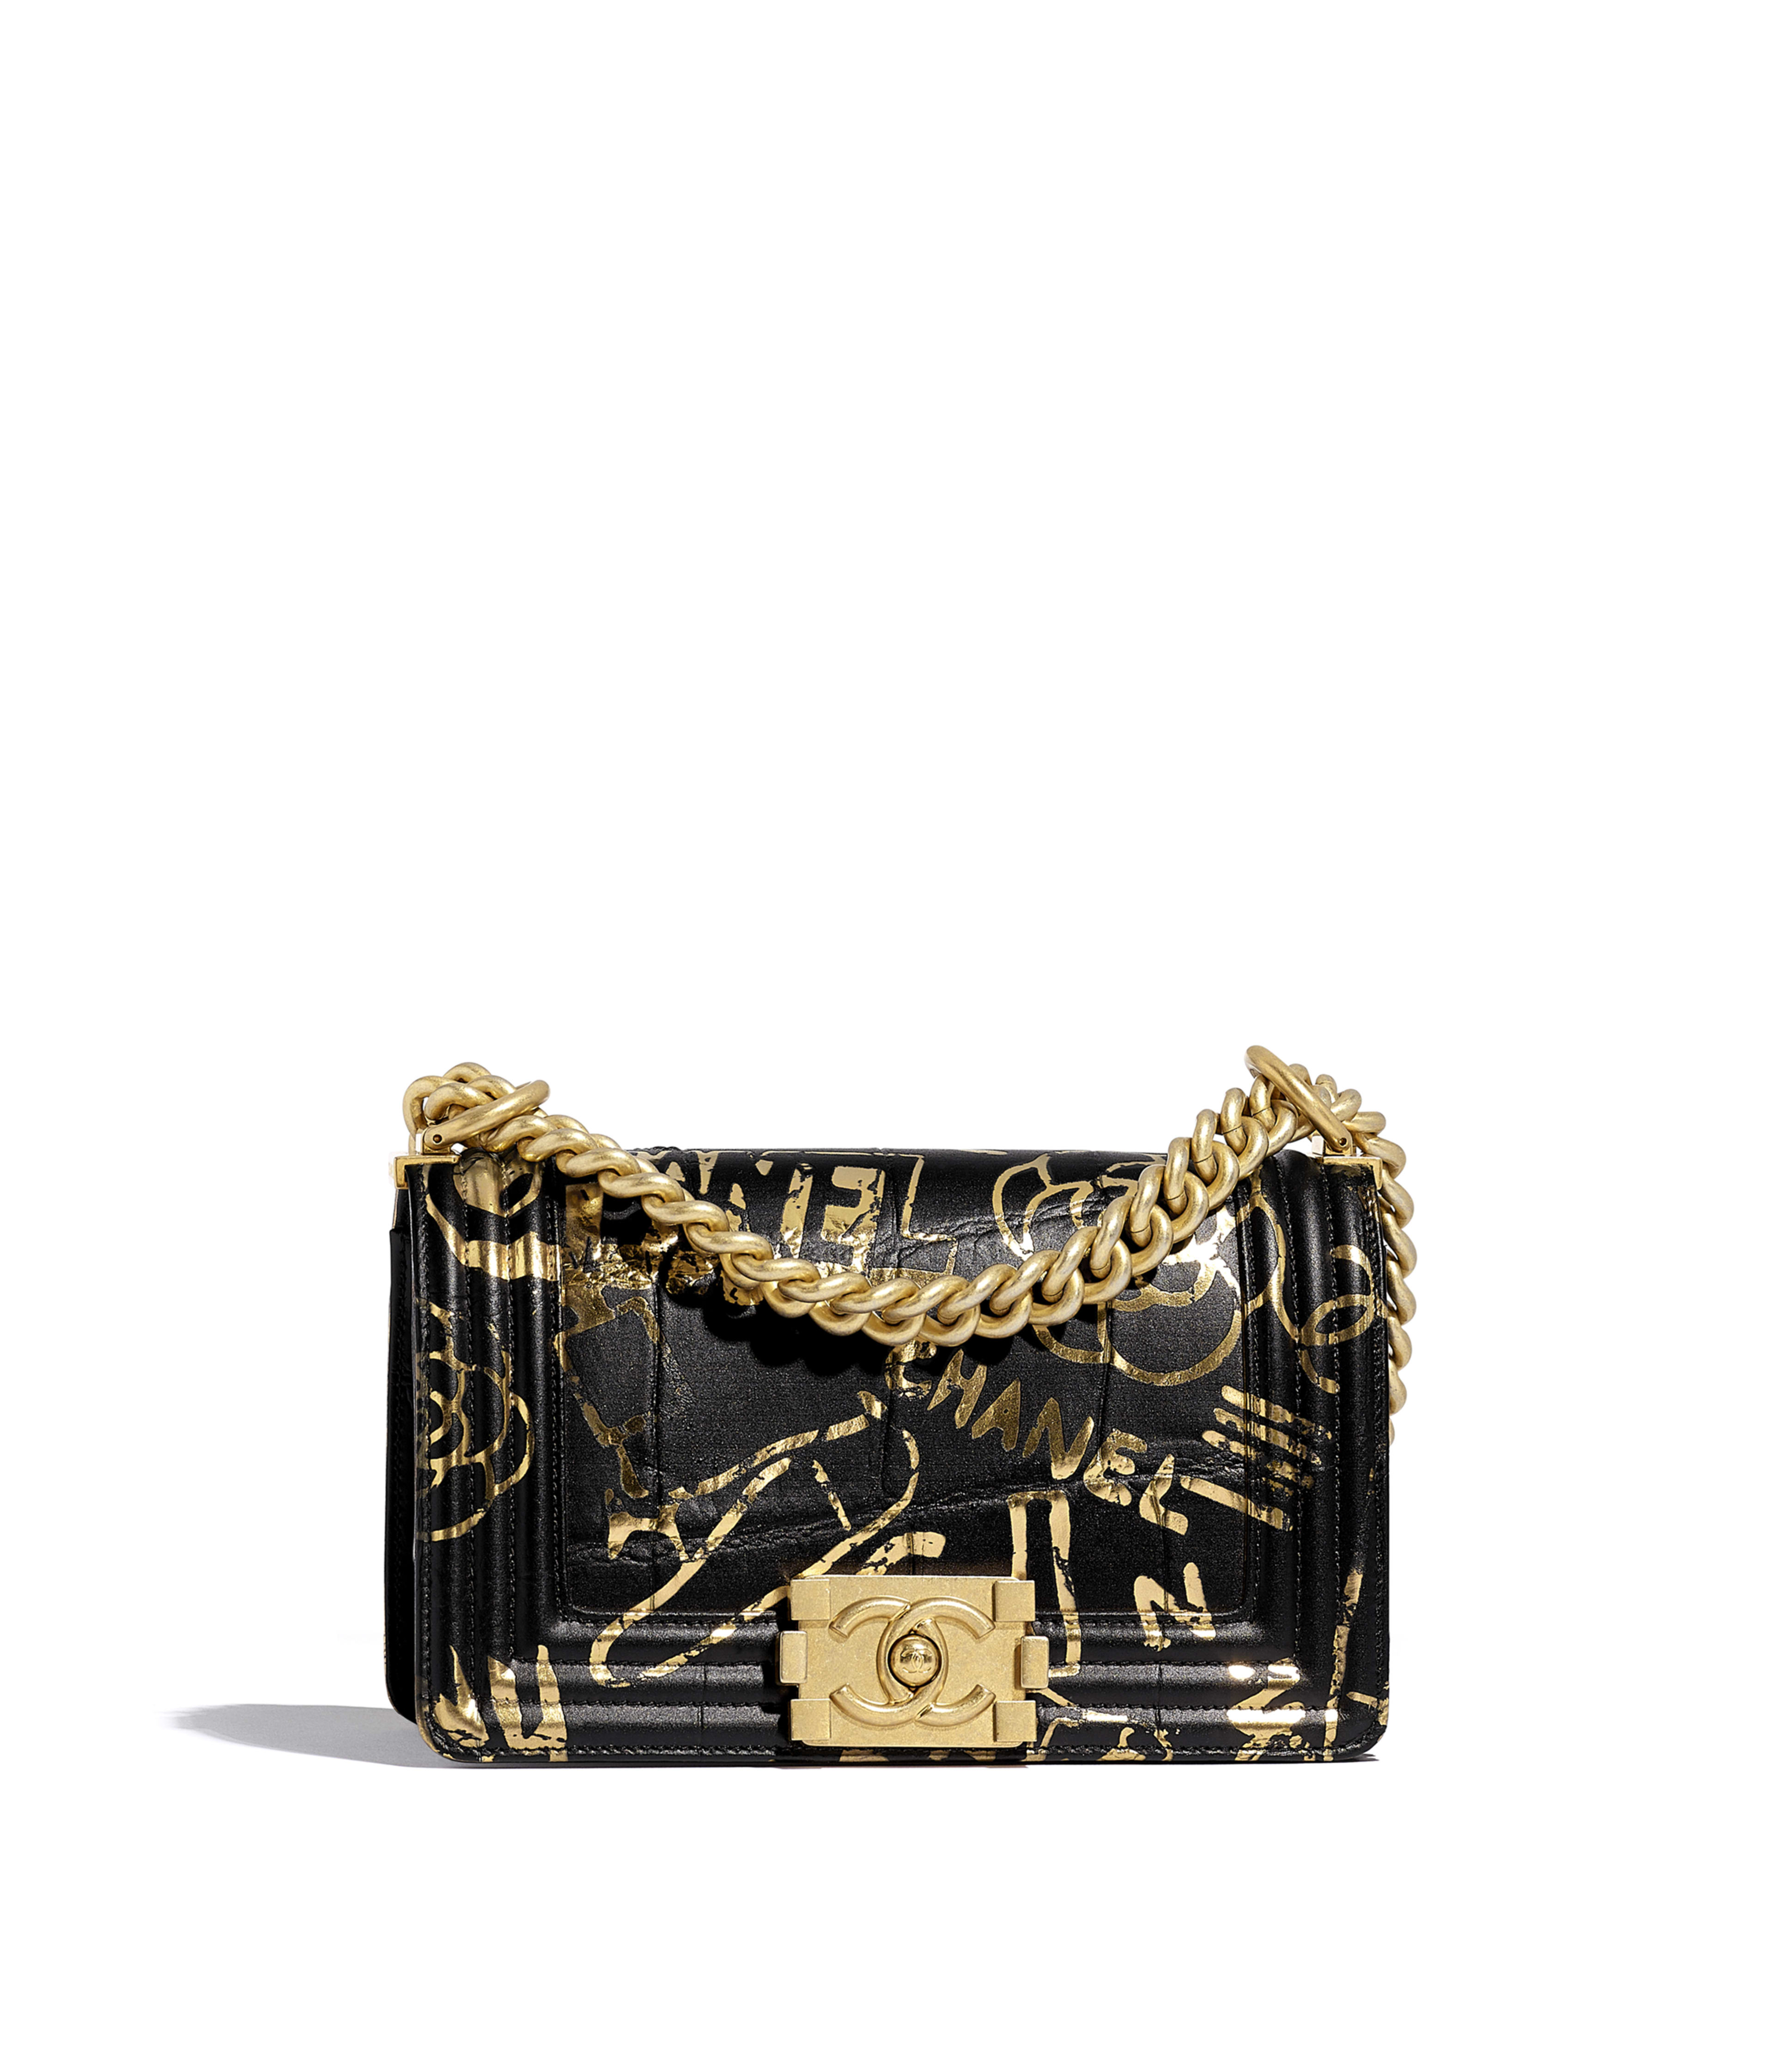 6ce756aa468ba7 Small BOY CHANEL Handbag Crocodile Embossed Printed Leather & Gold-Tone  Metal, Black & Gold Ref. A67085B00787N0784